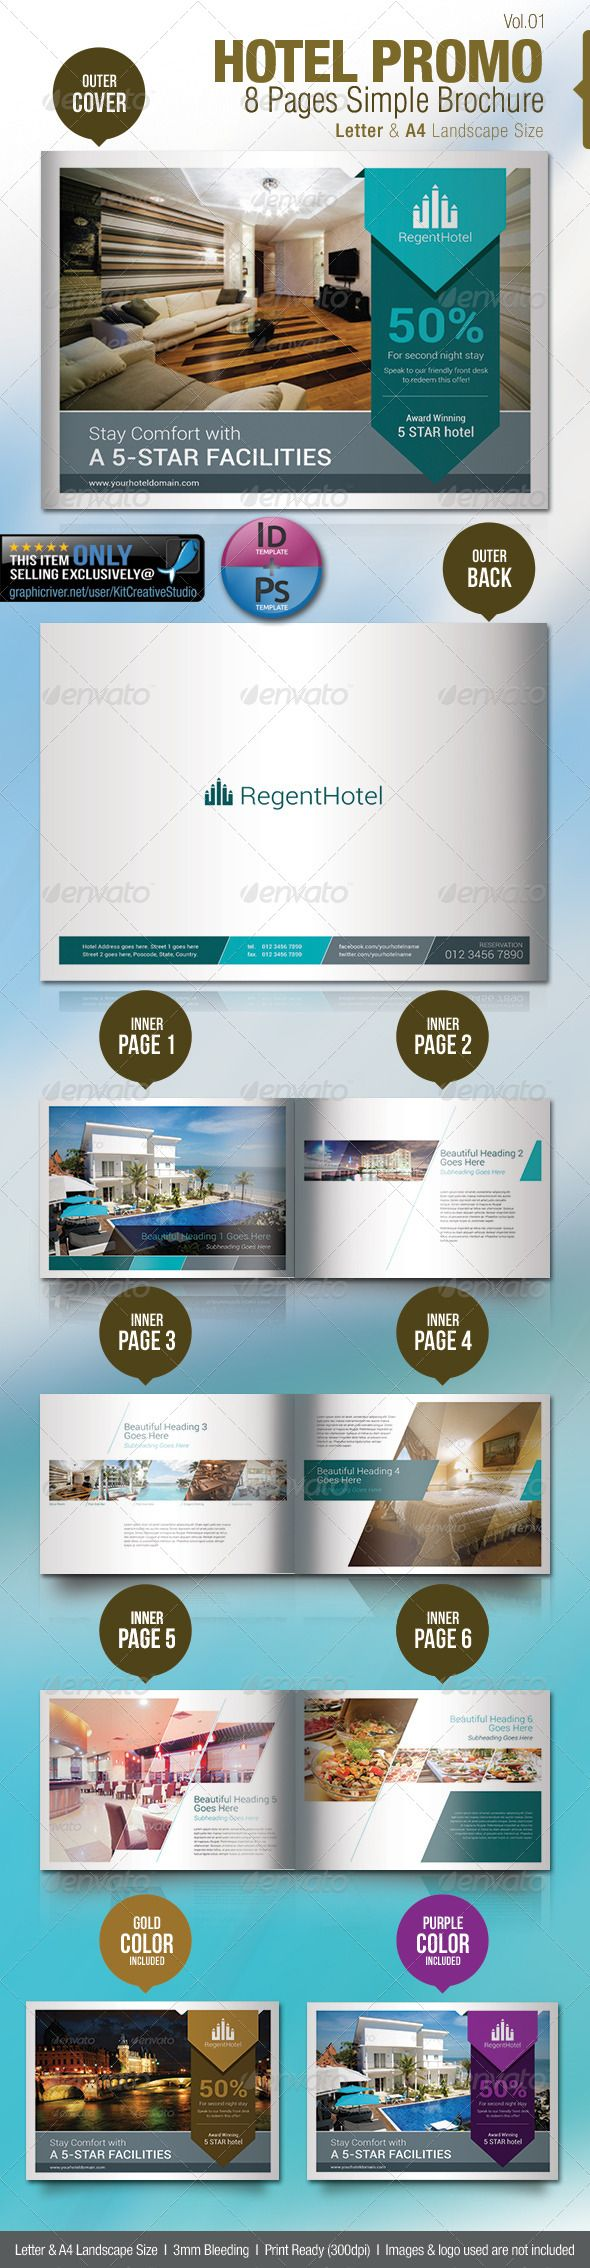 hotel promo 8 pages simple brochure brochures print templates